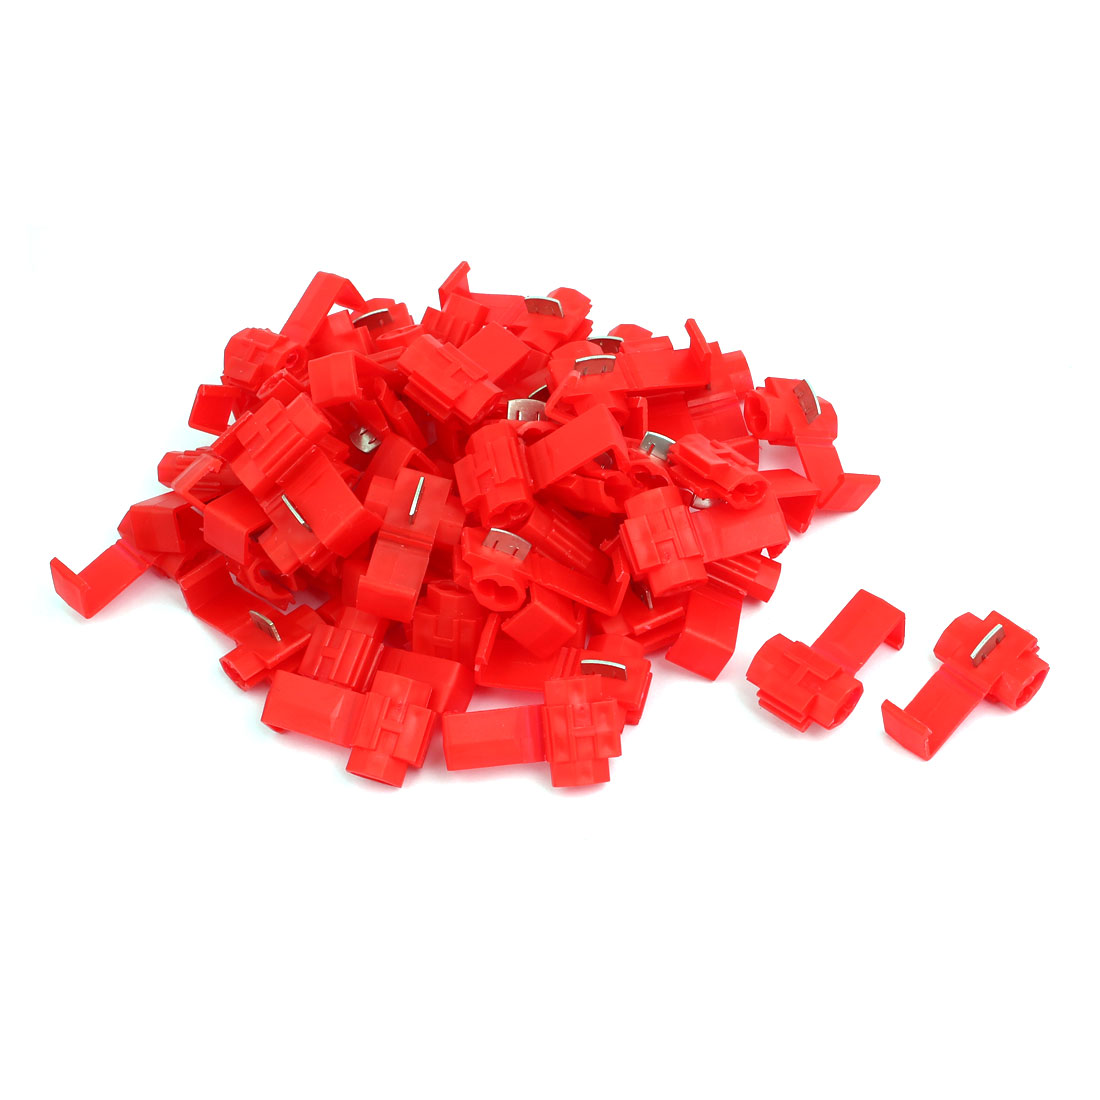 Unique Bargains 55Pcs Red Electrical Wire Connector Fast Quick Splice Cable Clip Terminals Crimp - image 2 of 2